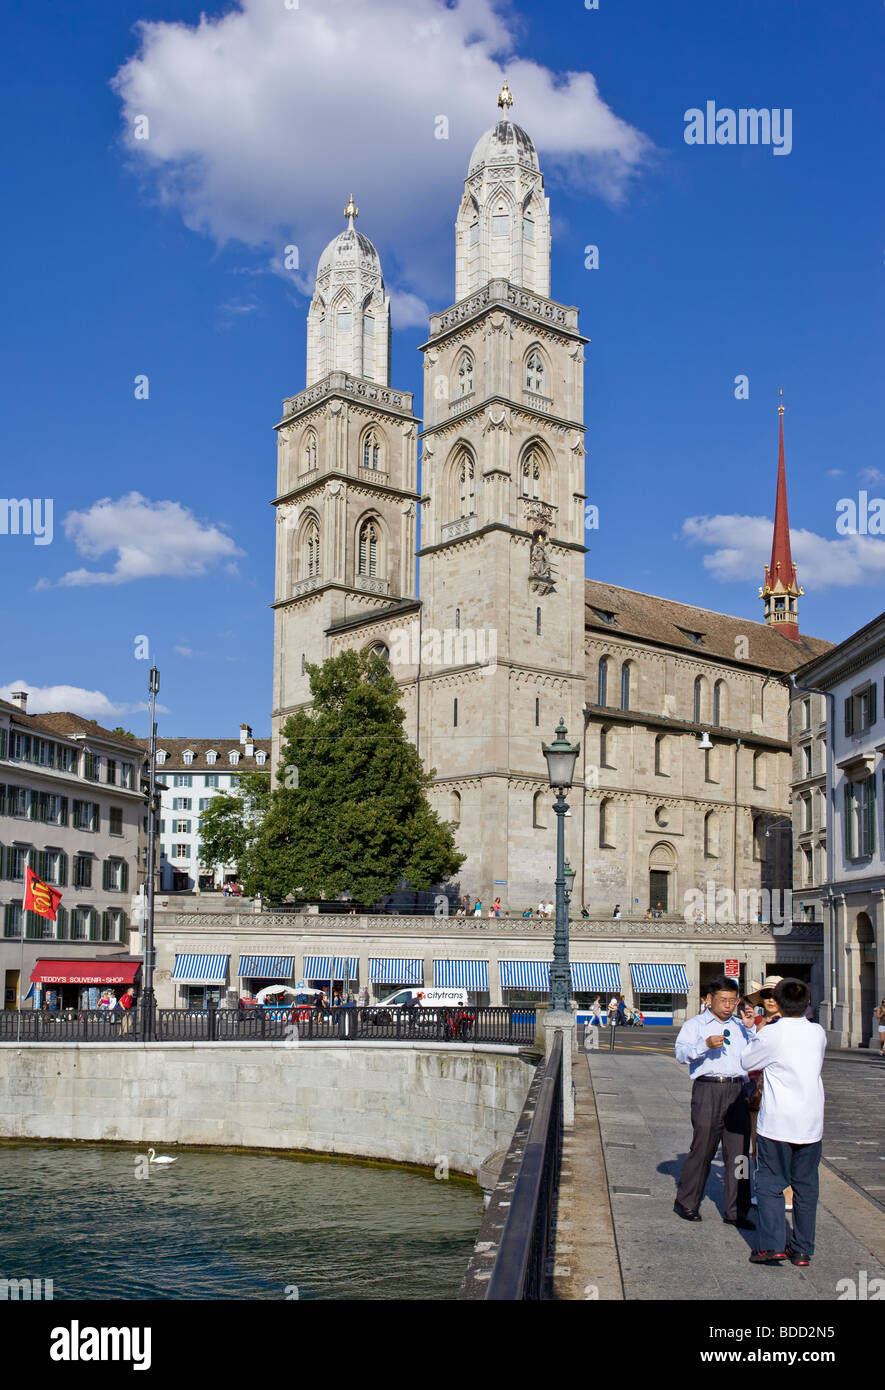 Asian tourists taking pictures in front of Zurich Fraumünster cathedral - Stock Image